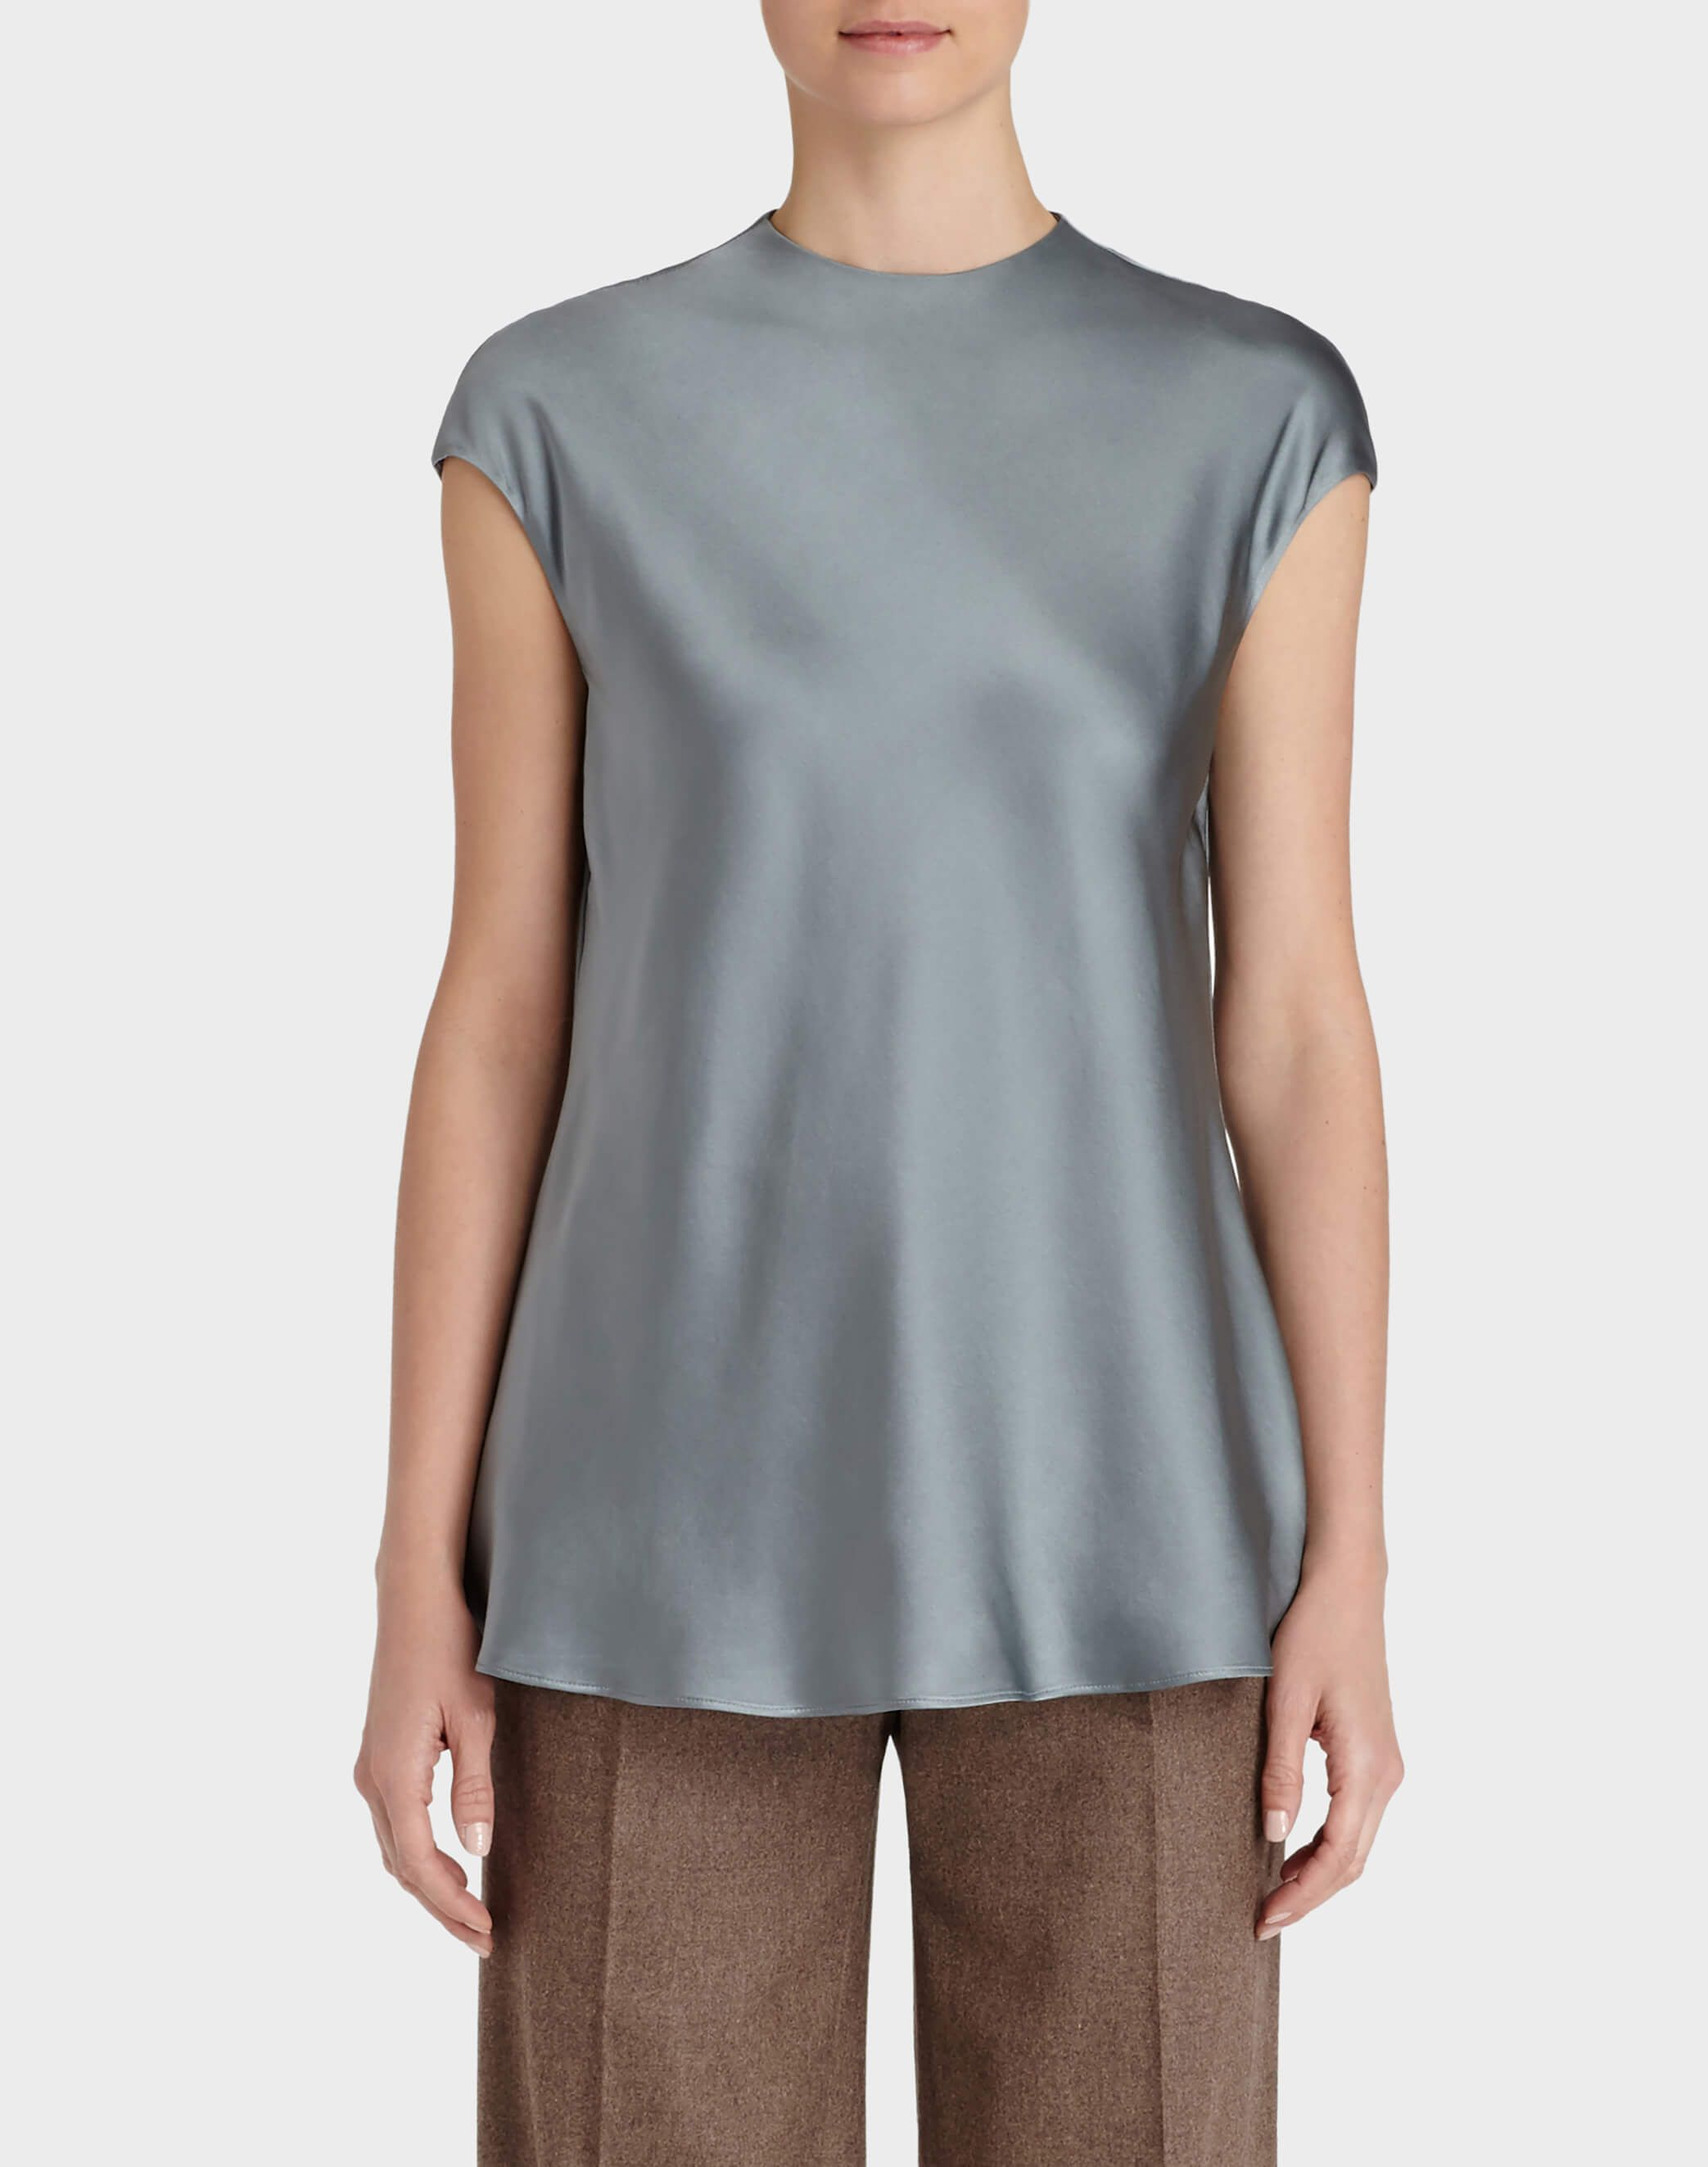 Water Washed Silk Gene Blouse - Blouses & Shirts - New Arrivals | Lafayette 148 New York: